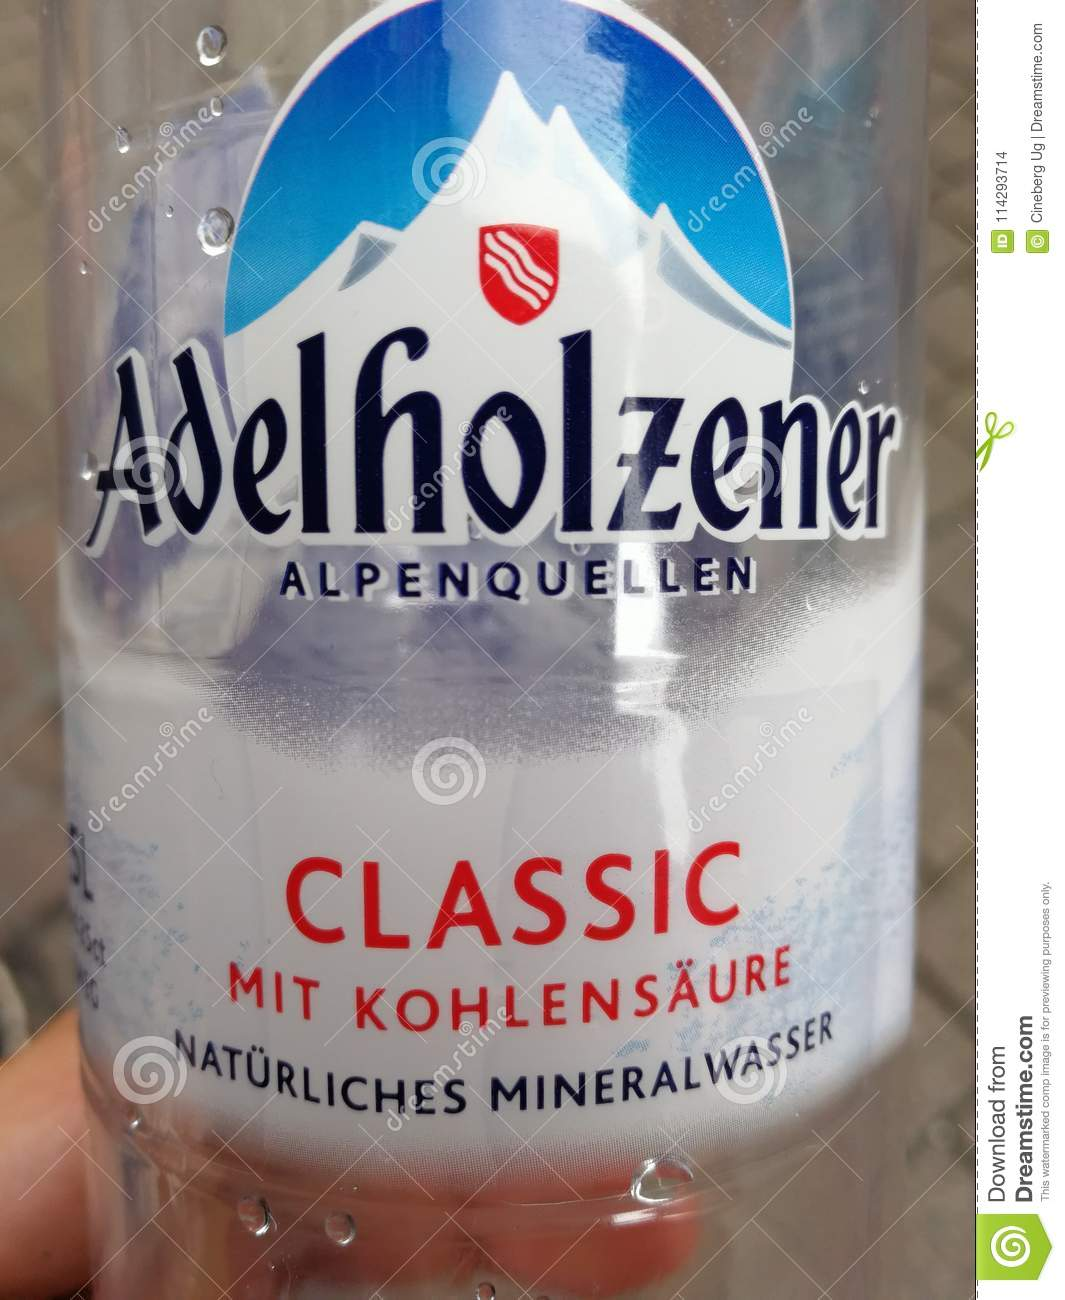 Bad Mannheim Adelholzener Bottled Water Editorial Stock Image Image Of